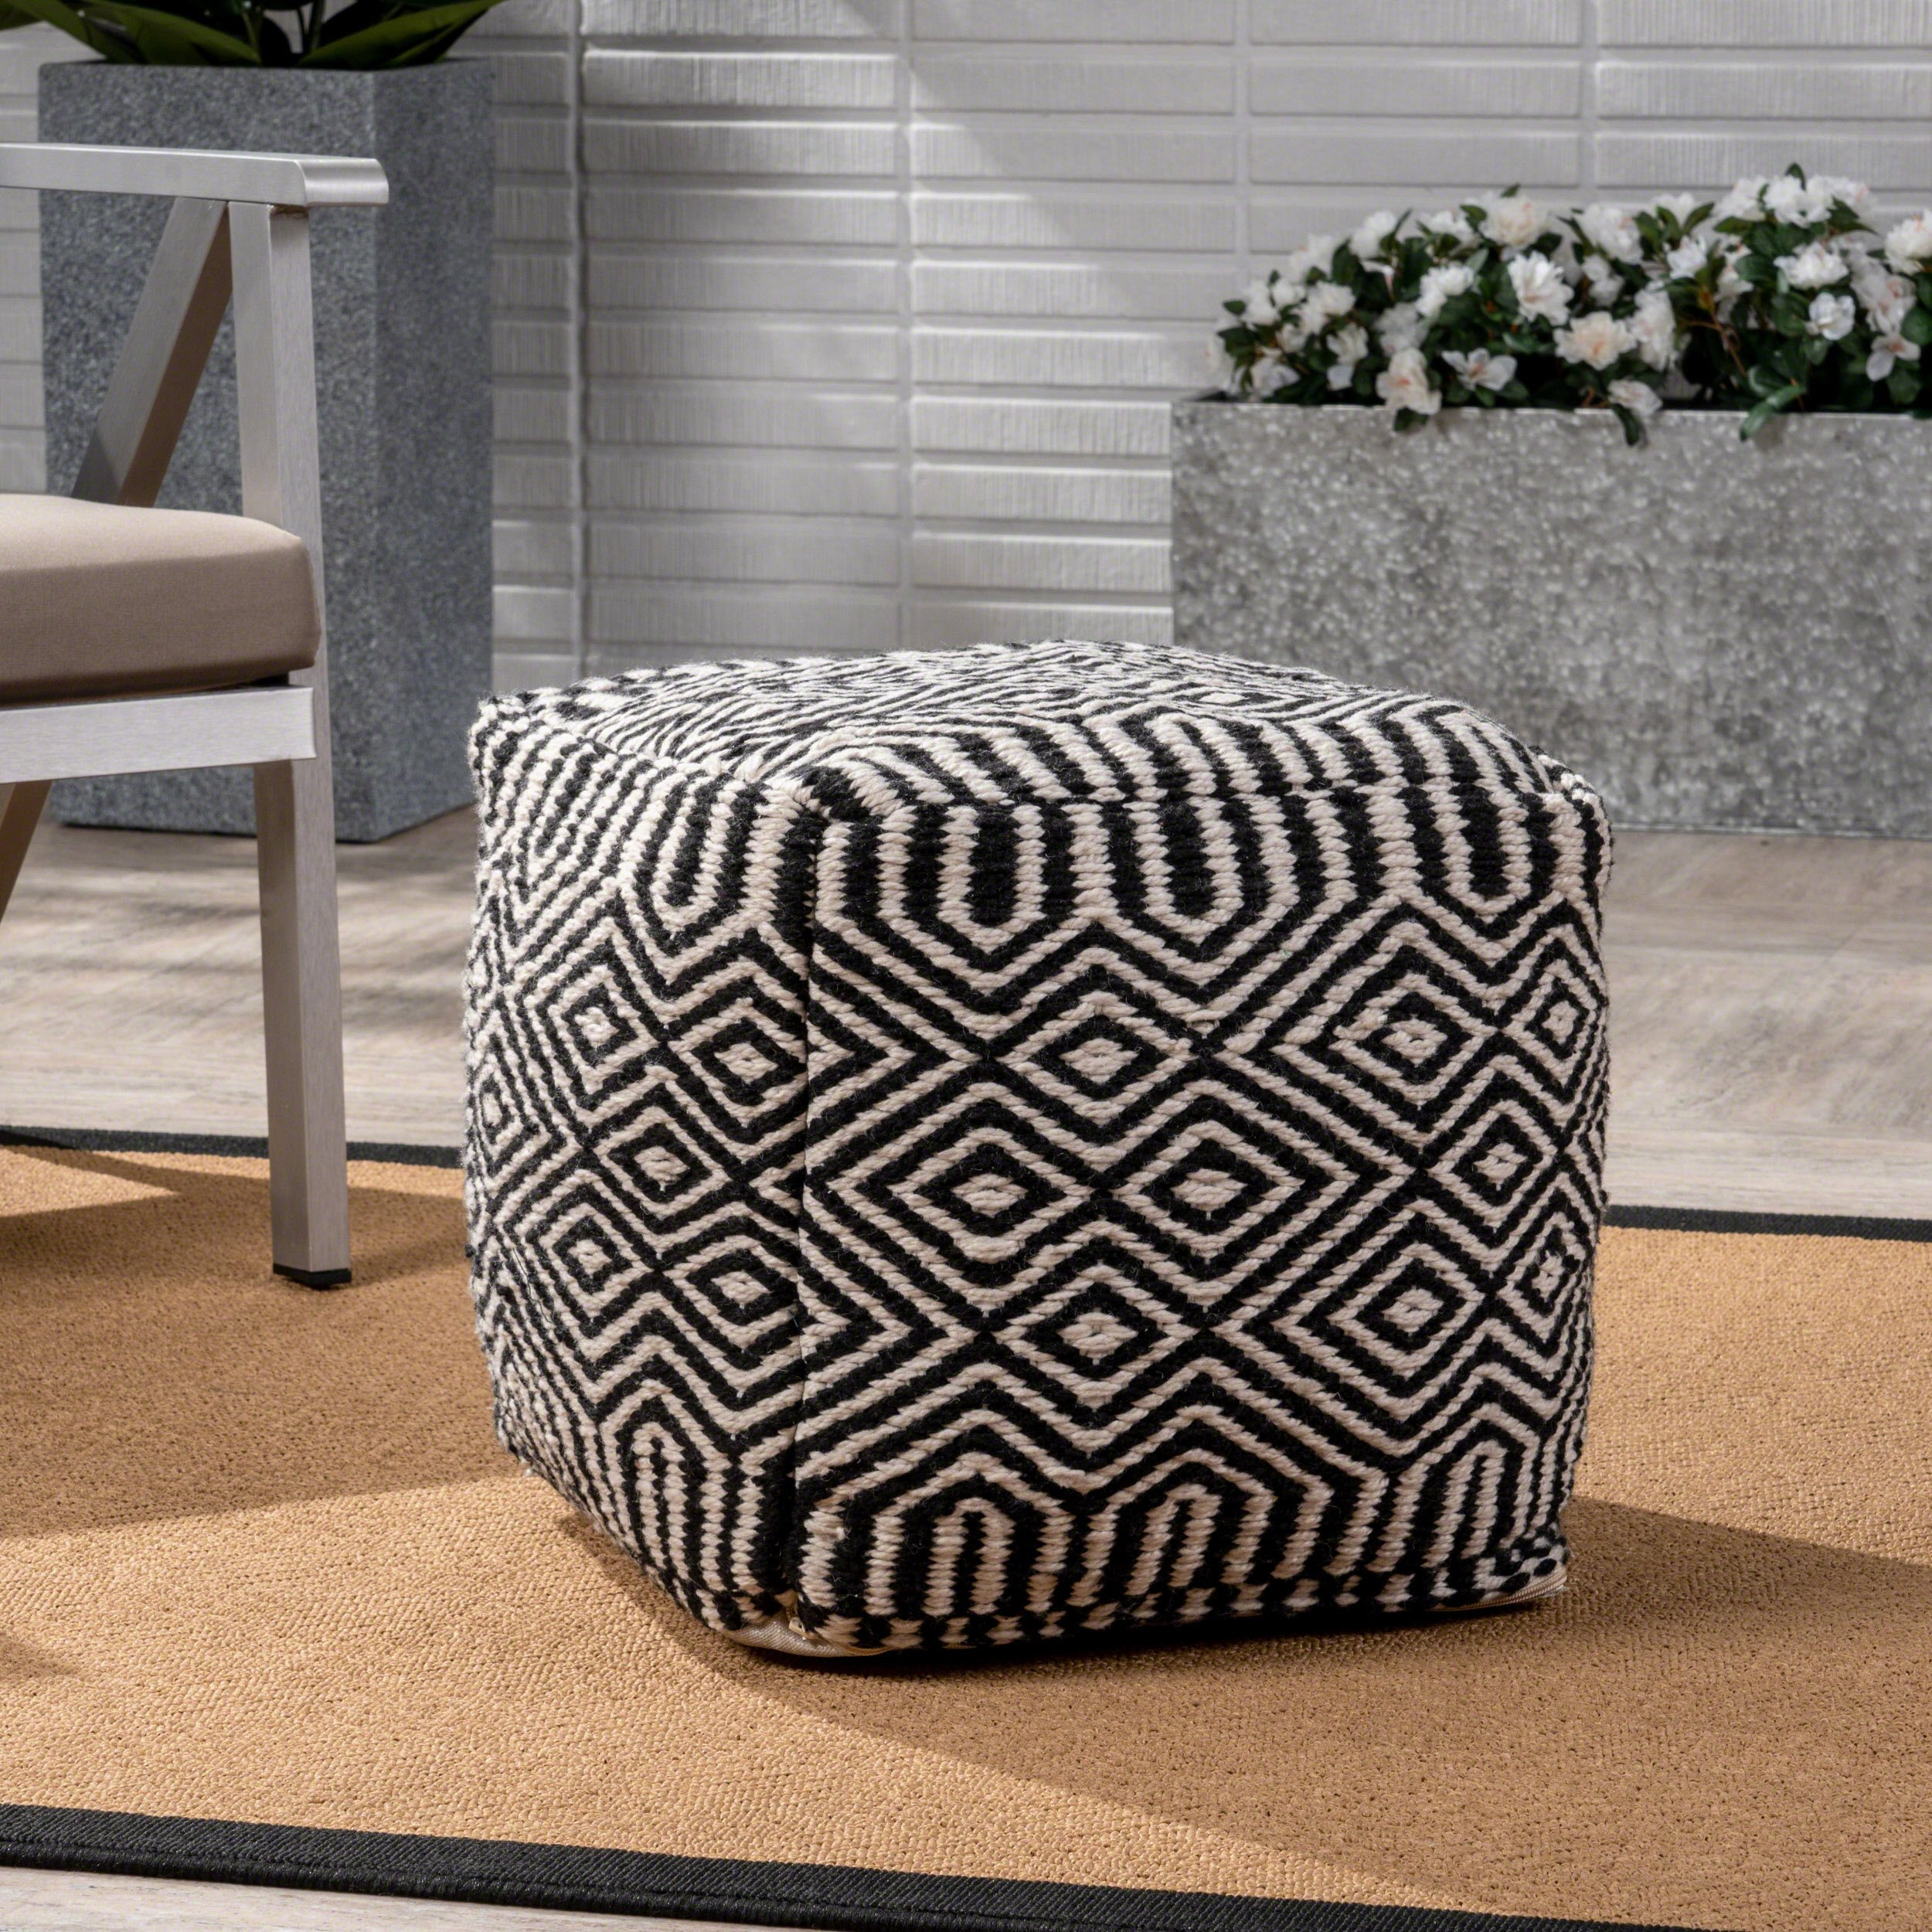 Great Deal Furniture Adams Outdoor Modern Boho Pouf, Black with White